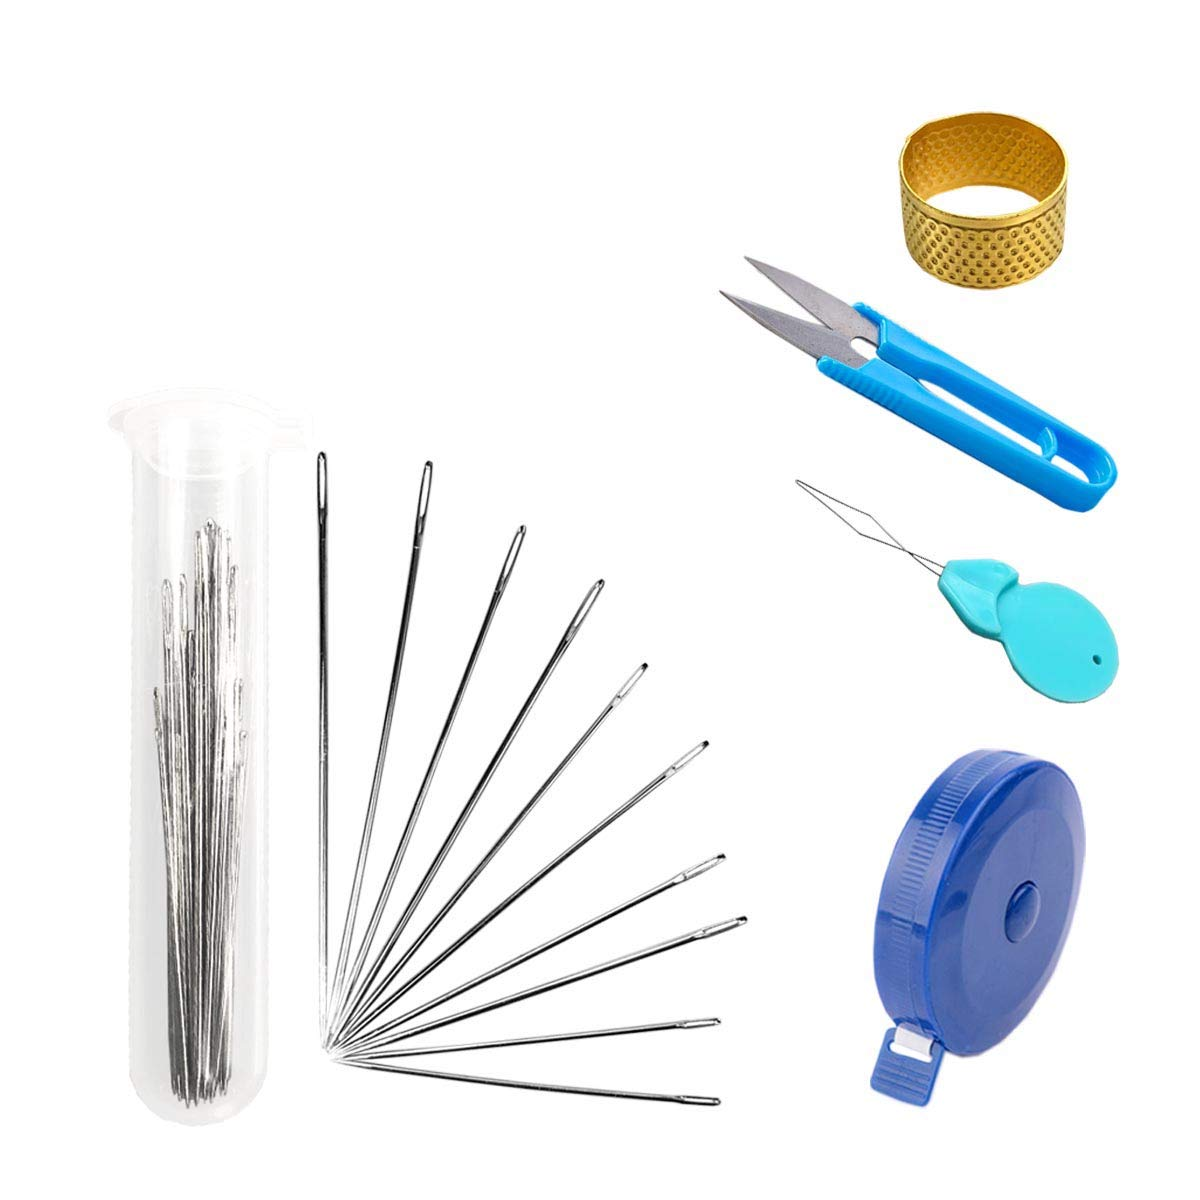 30 Piece Hand Sewing Repairs Set DIY Supplies, Including Needles, Push Button Tape Ruler, Sewing Scissors, Thimble, Needles Storage Tubes CINFAR